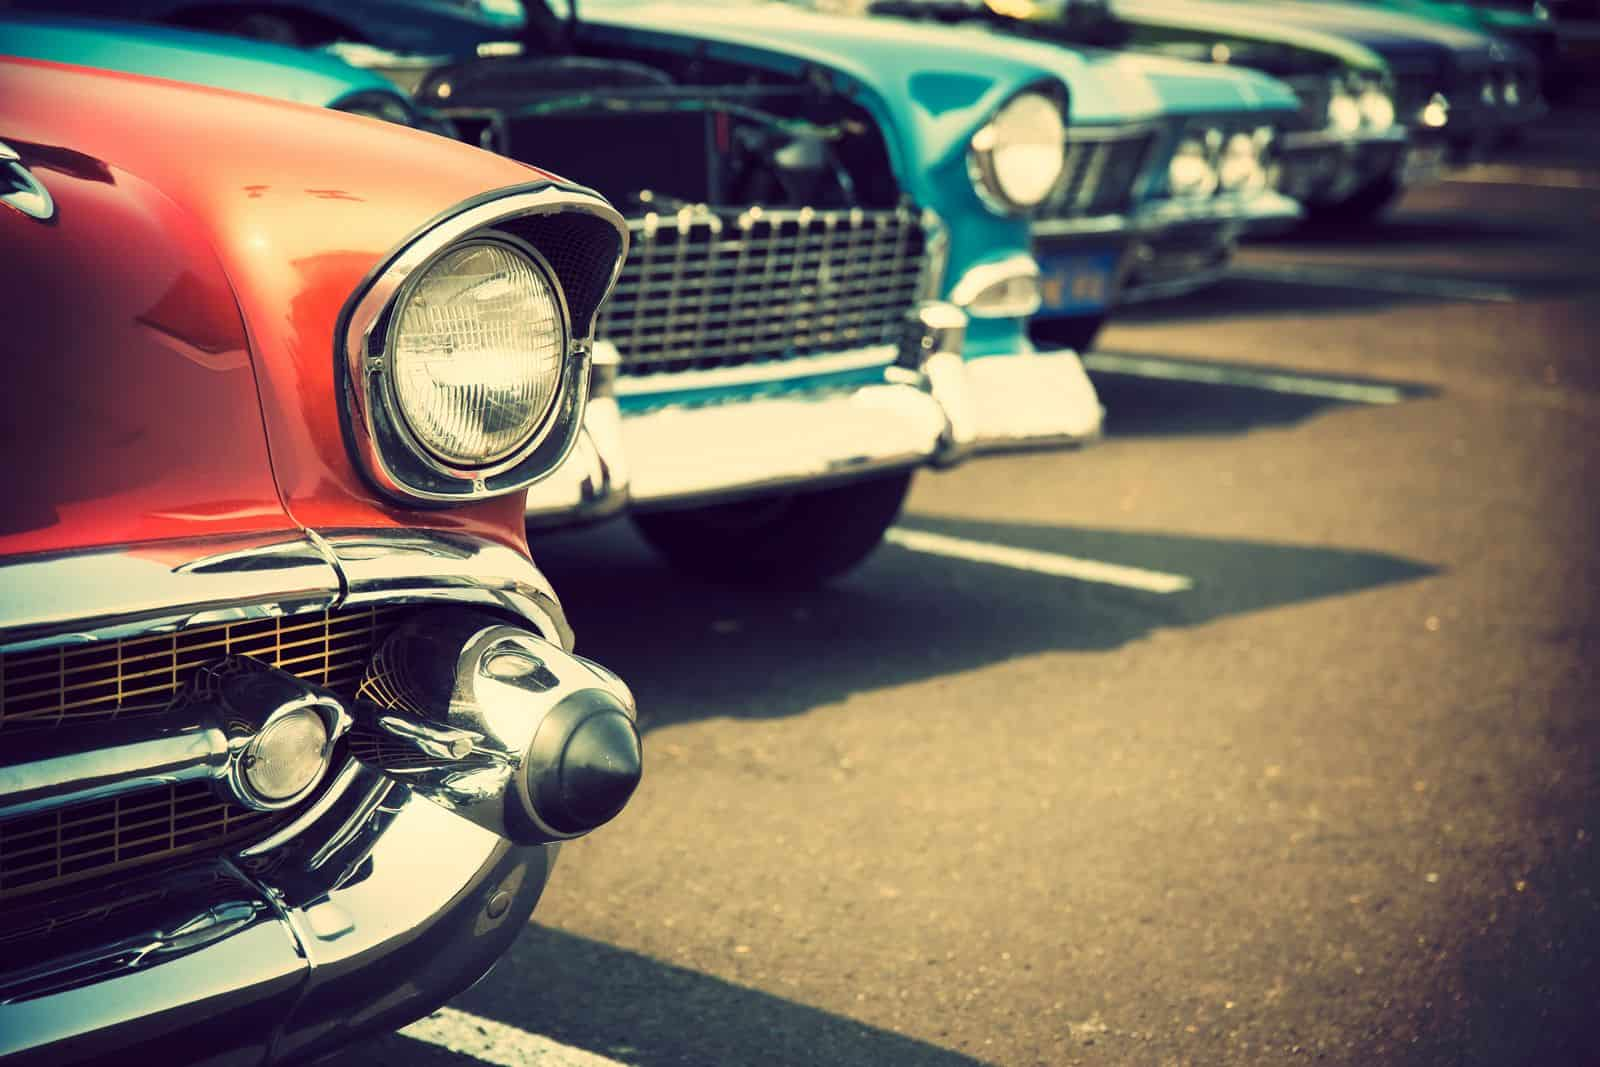 Get Auto Insurance For Your Classic Car Today With Leibel Insurance